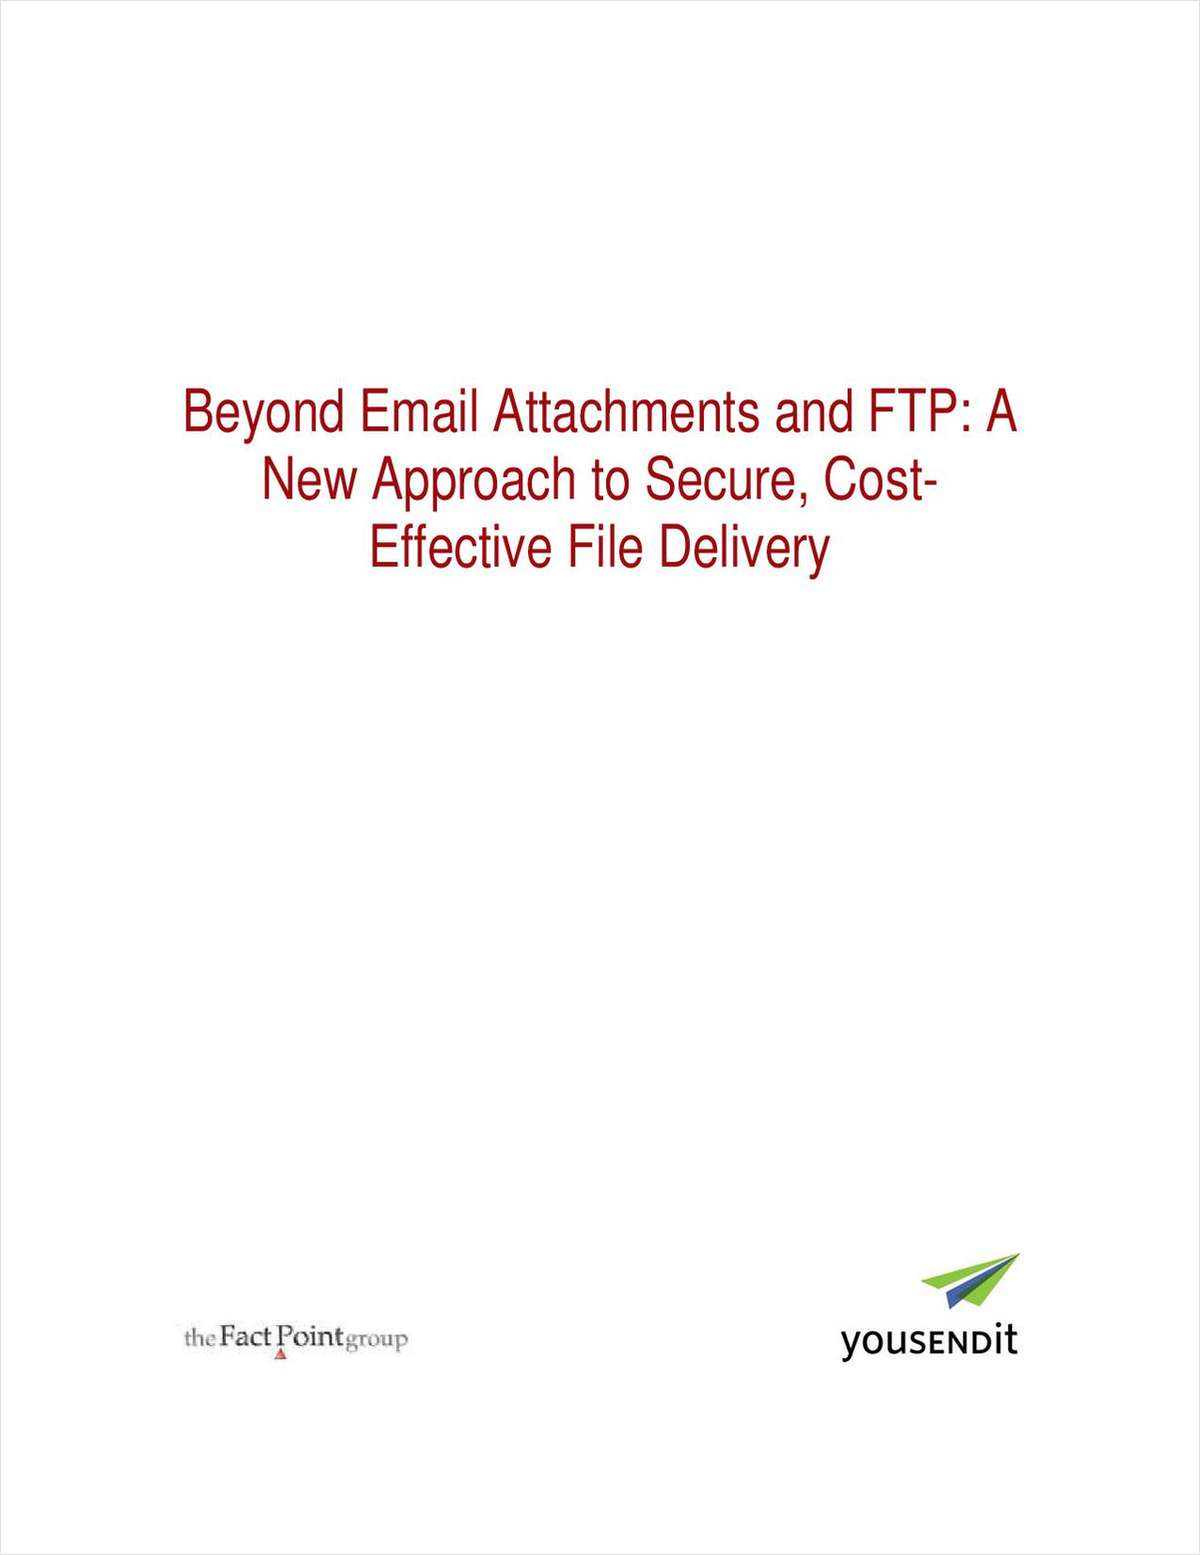 Beyond Email Attachments and FTP: A New Approach to Secure, Cost-Effective File Delivery